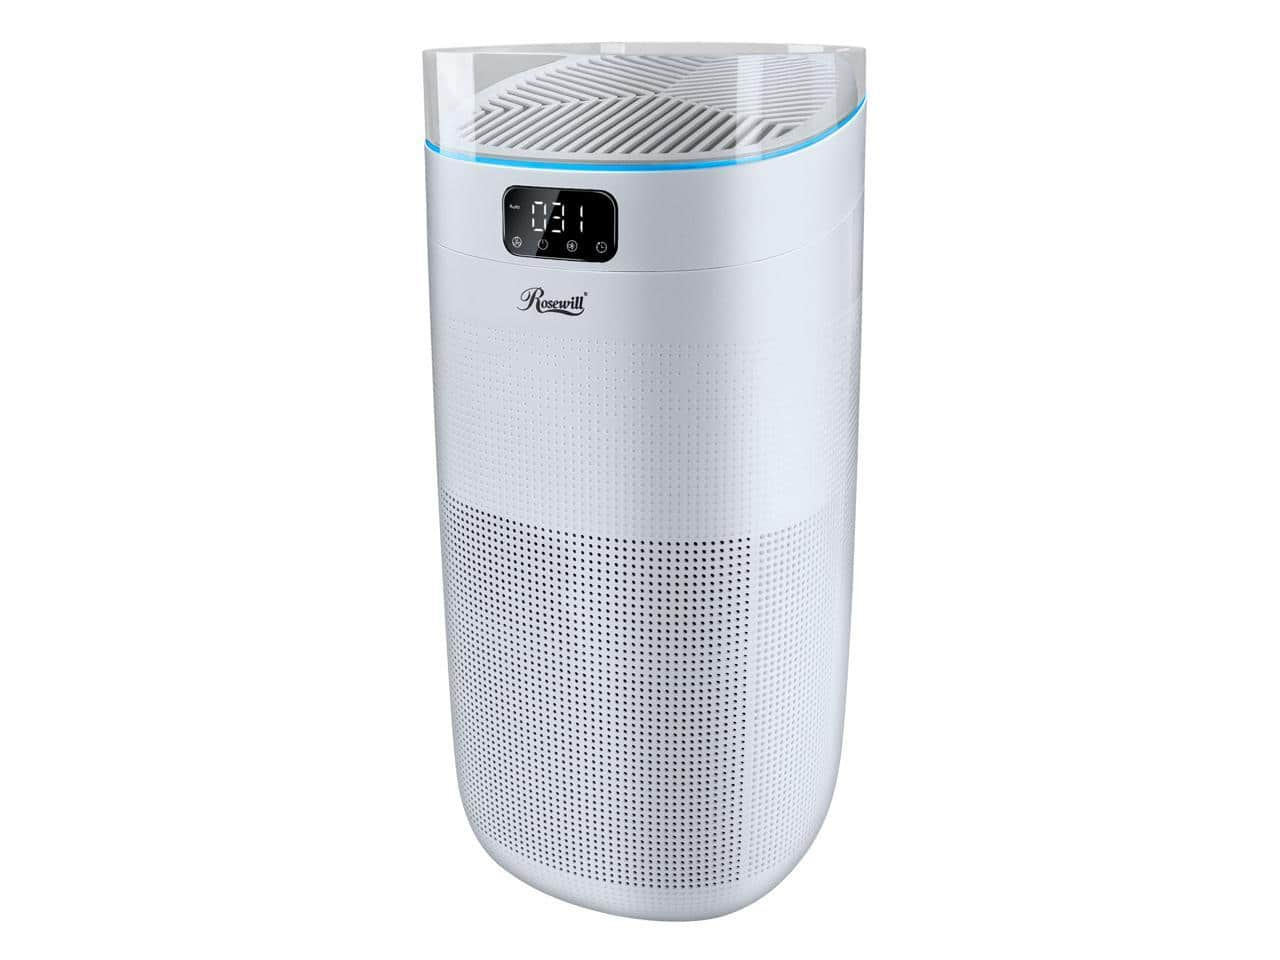 Rosewill True HEPA Large Room Air Purifier For Home or Office   Carbon Filter   UV Light   (RHAP-20001) @Newegg $80